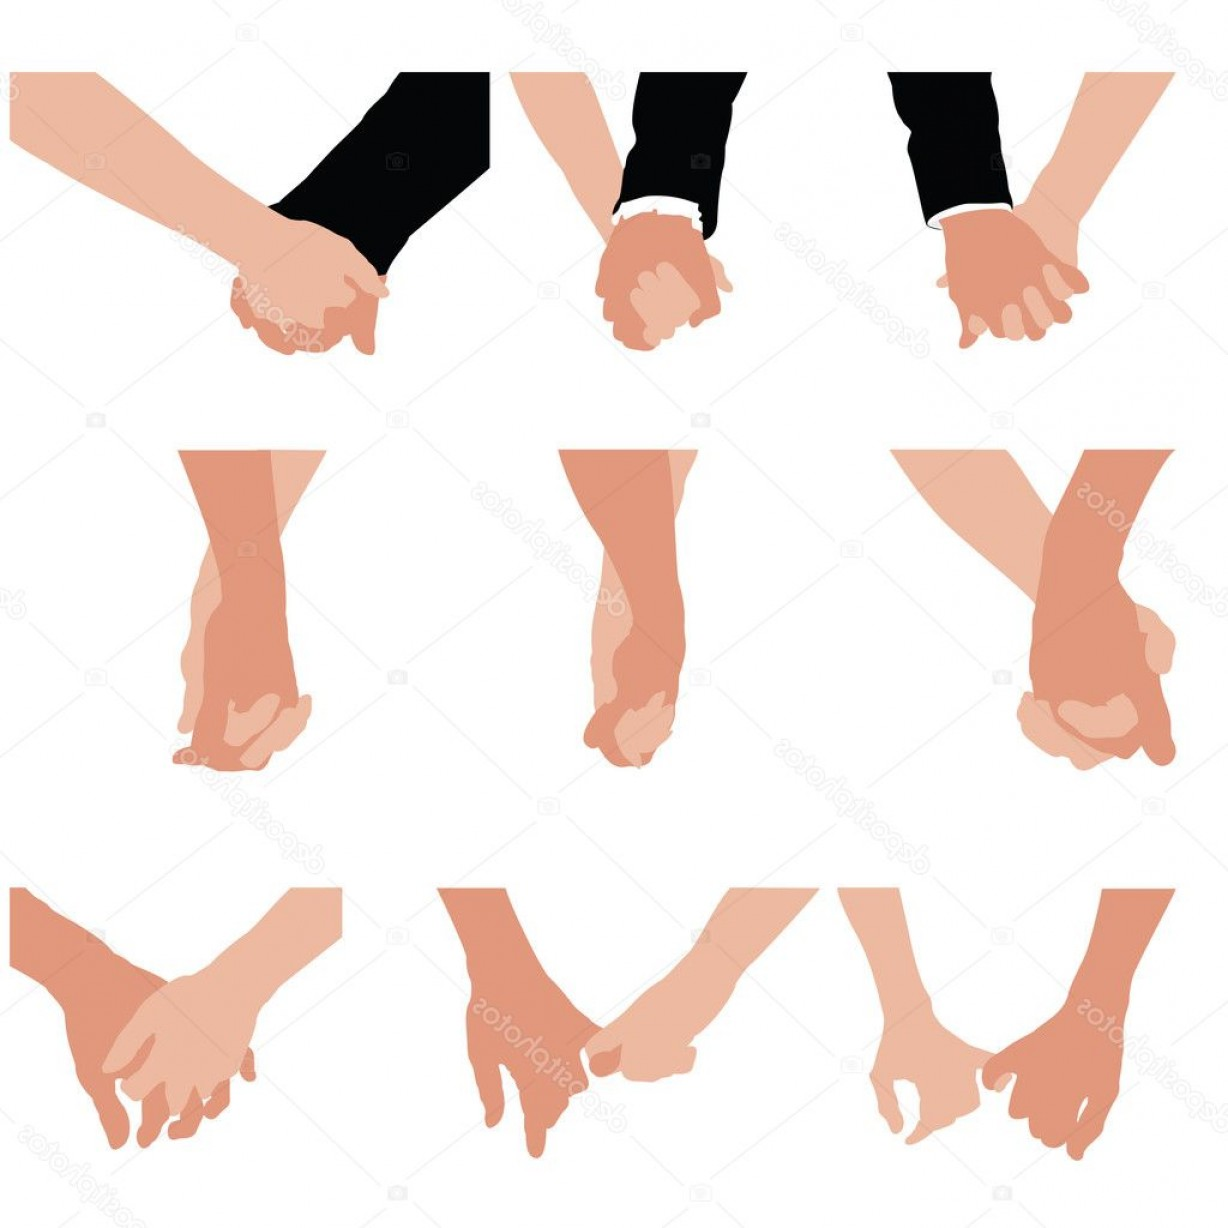 Hand Vector Clip Art: Stock Illustration Couples Holding Hands Vector